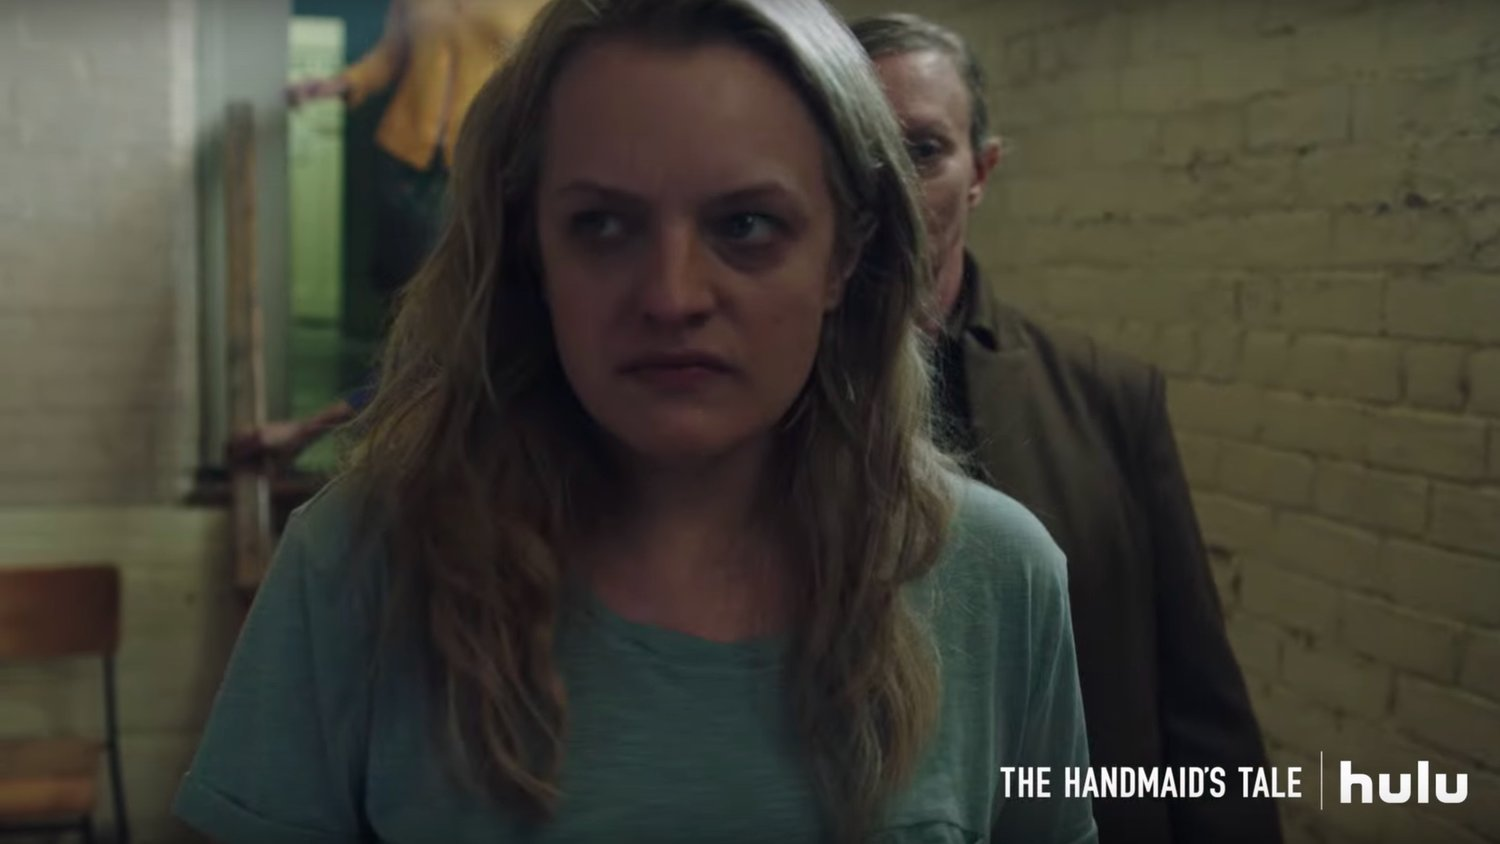 Elisabeth Moss Is Defiant in the Super Bowl Spot for Hulu's THE HANDMAID'S TALE